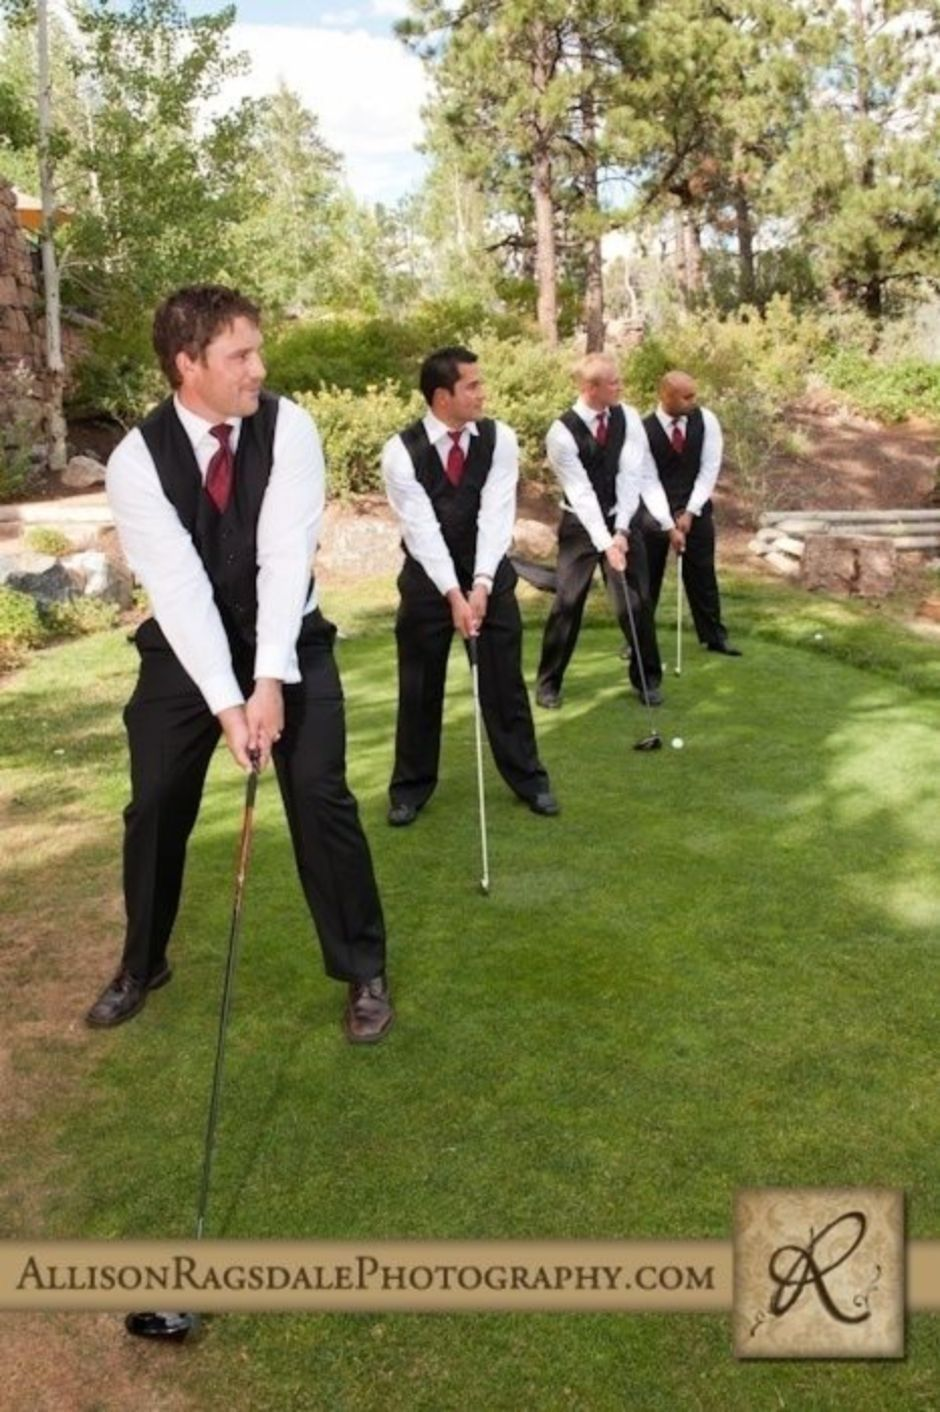 100+ Groomsmen Photos Poses Ideas You Can't Miss 40